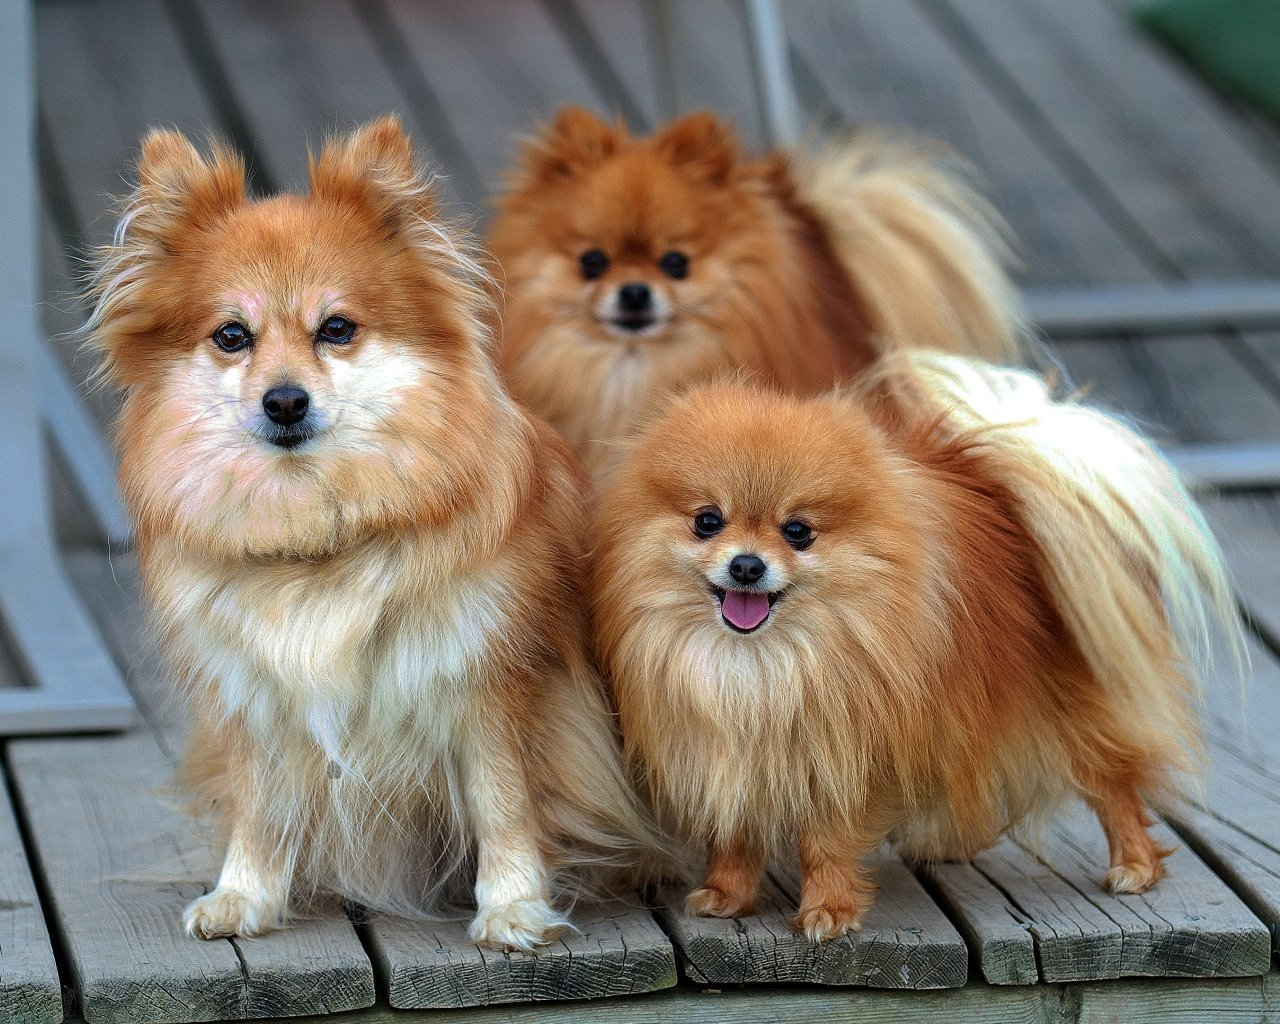 Pomeranian-all-small-dogs-18774592-1280-